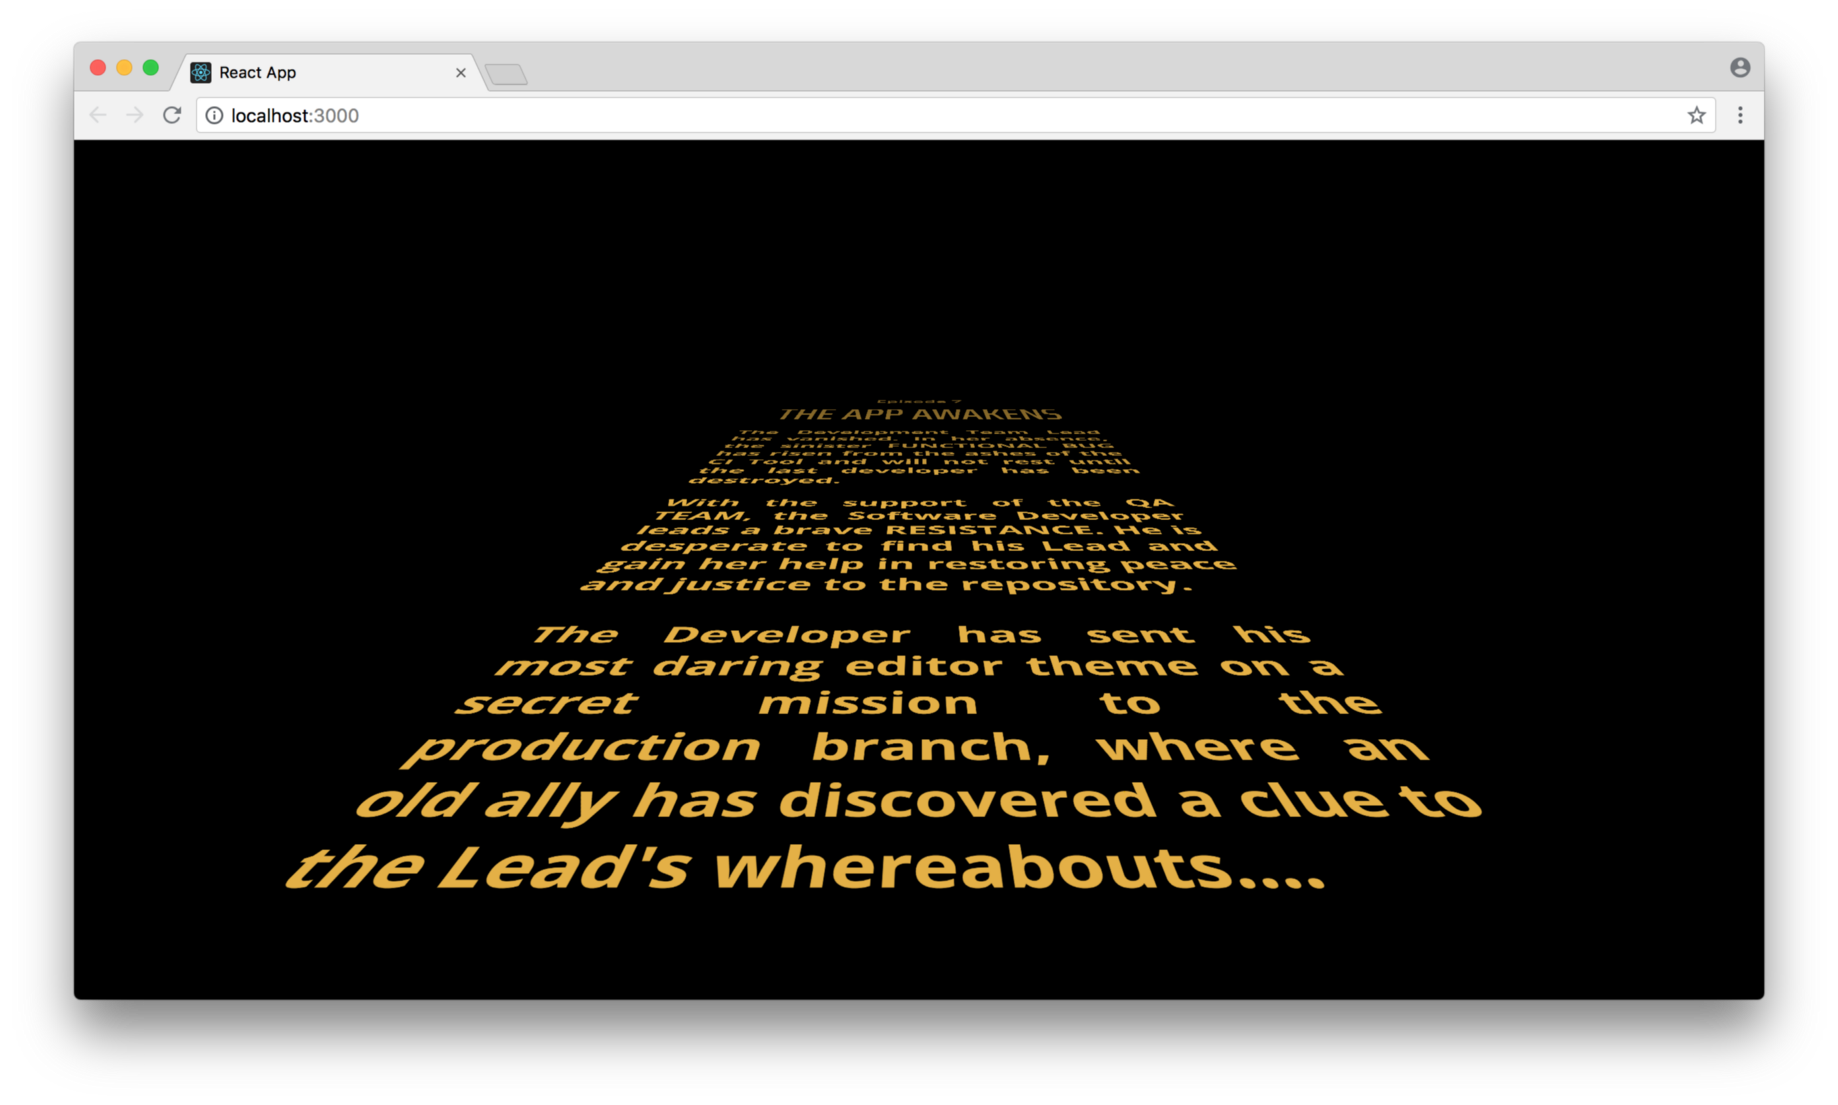 Tutorial: Animate the Opening Star Wars Crawl in a React App with